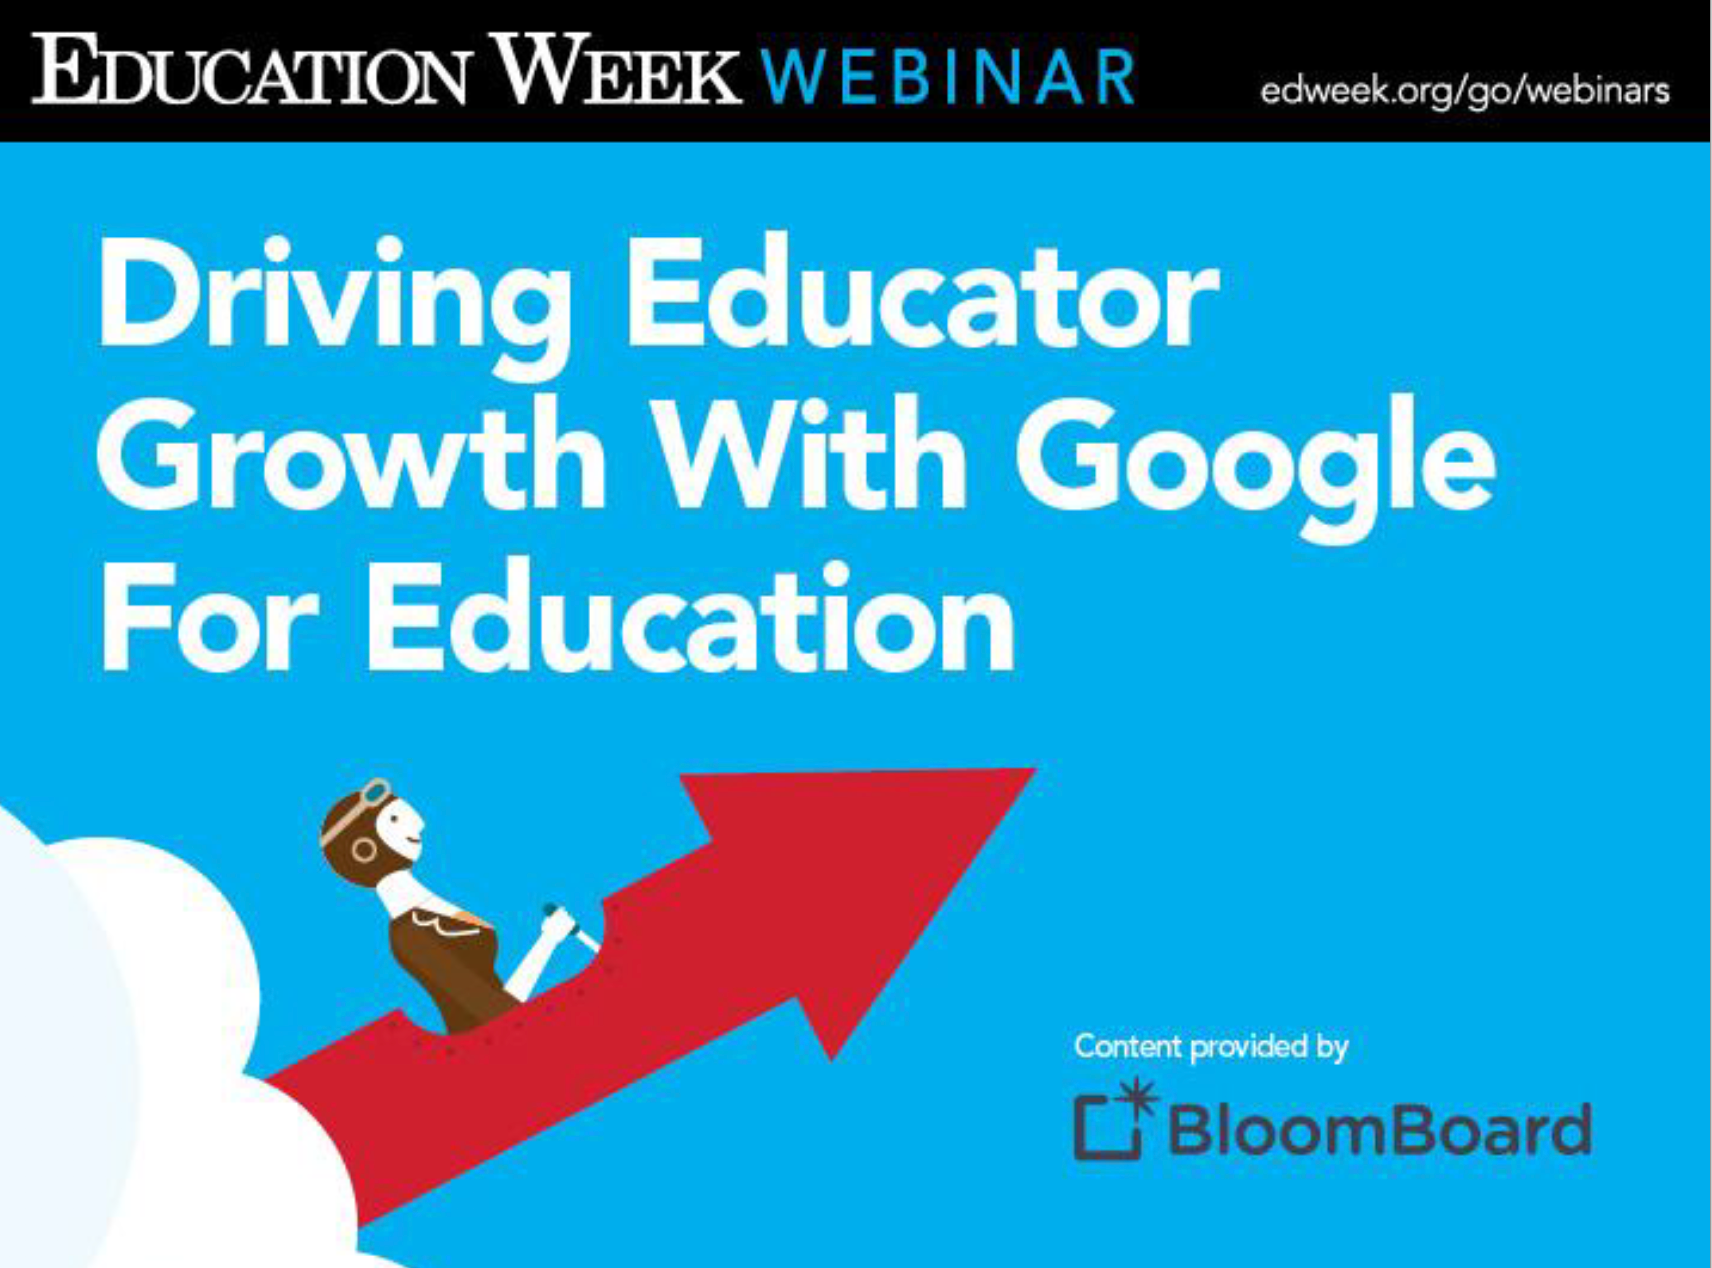 Webinar: Driving Educator Growth with Google for Education